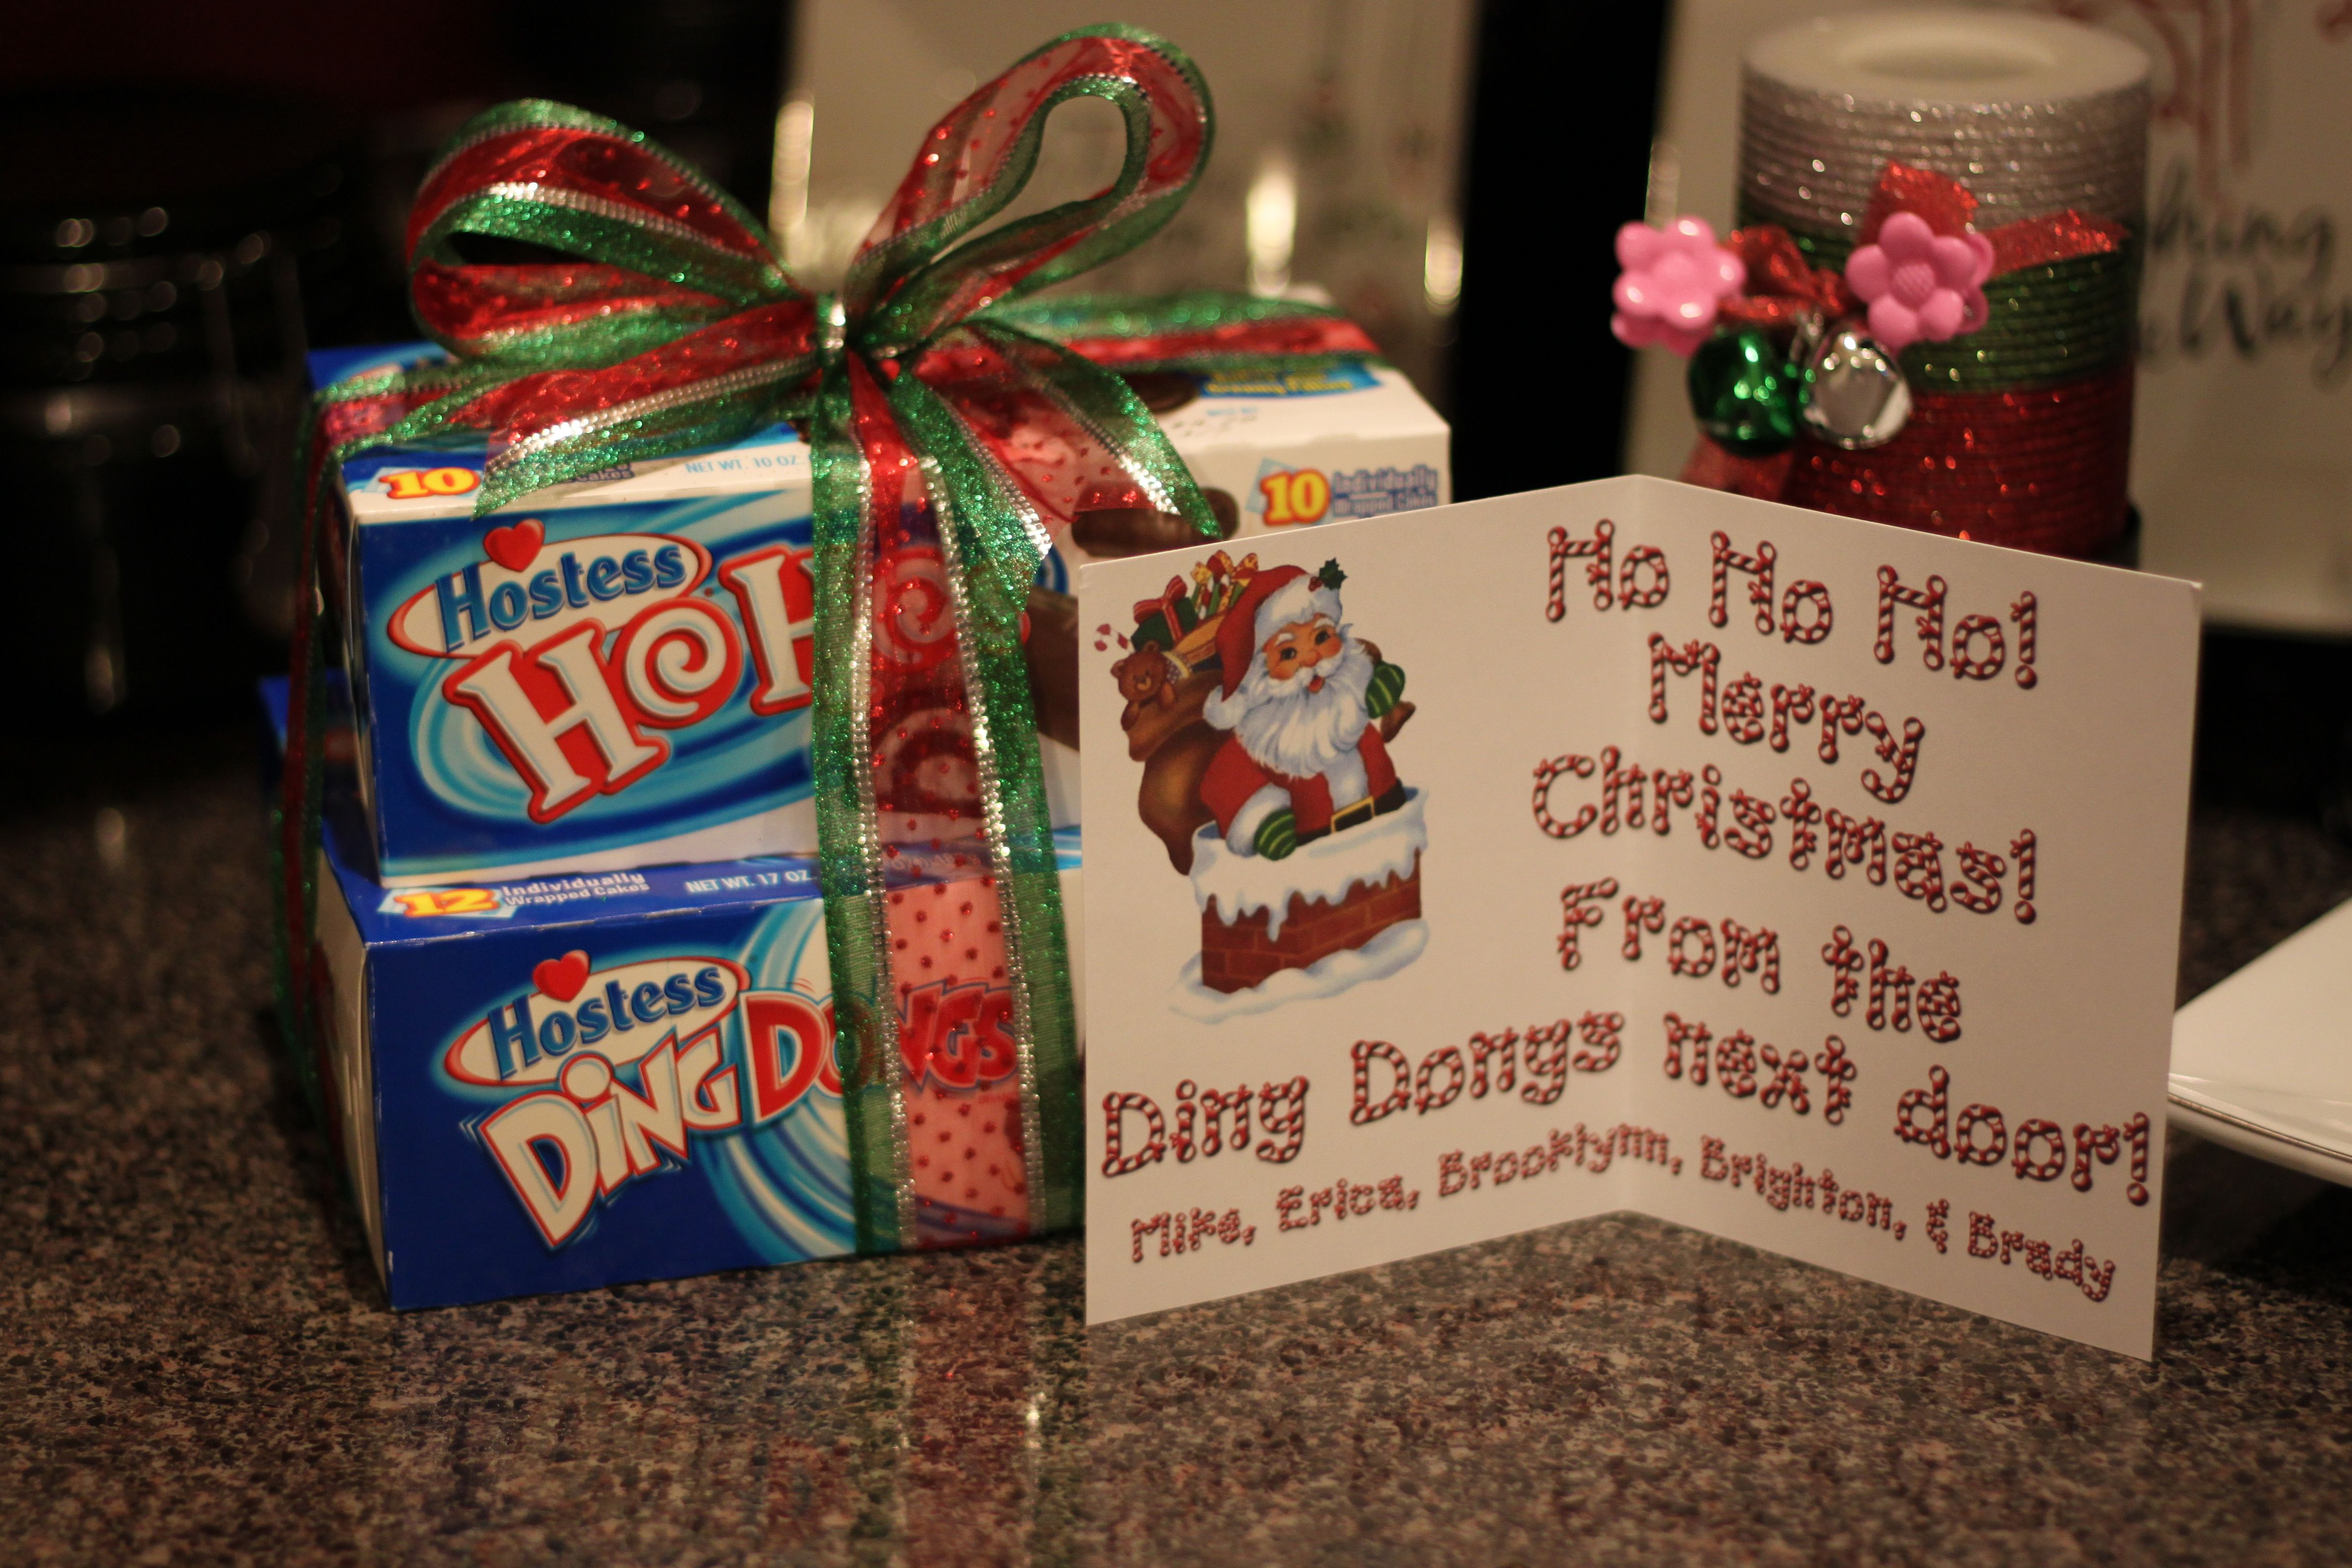 Neighbor Gift Ho Ho Ho Merry Christmas From The Ding Dongs Next Door Neighbor Christmas Gifts Christmas Neighbor Christmas Gifts